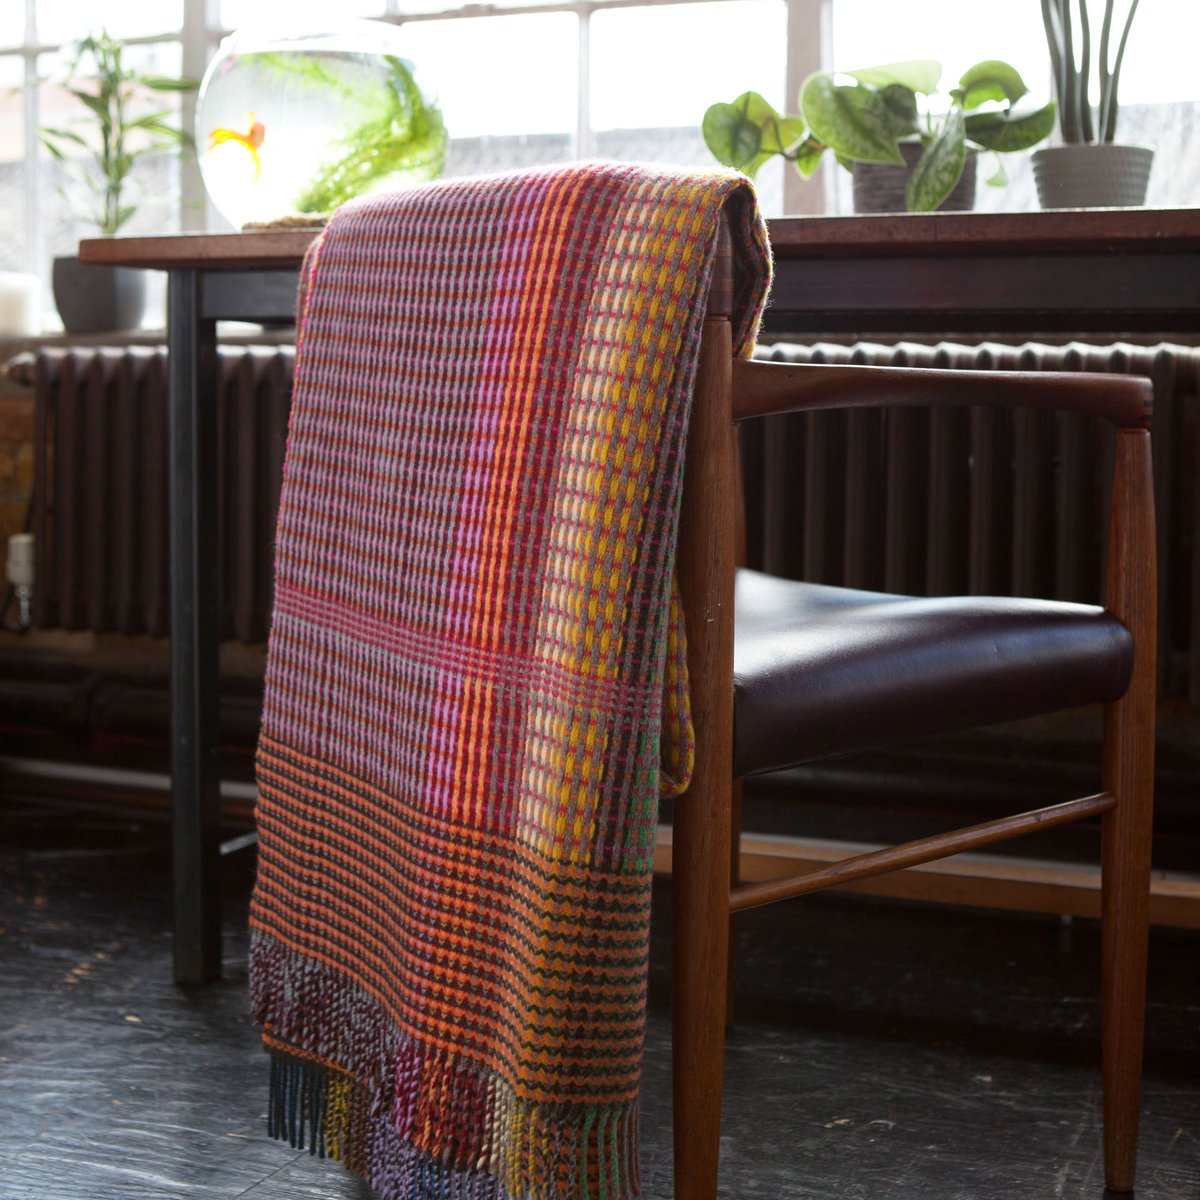 Lambswool basket weave throw &quot;Ladbroke&quot; #lambswool #basketweave #throw #blanket #madeinbritain #interiordesign #clerkenwell #islington<br>http://pic.twitter.com/fRAoNpXzGn